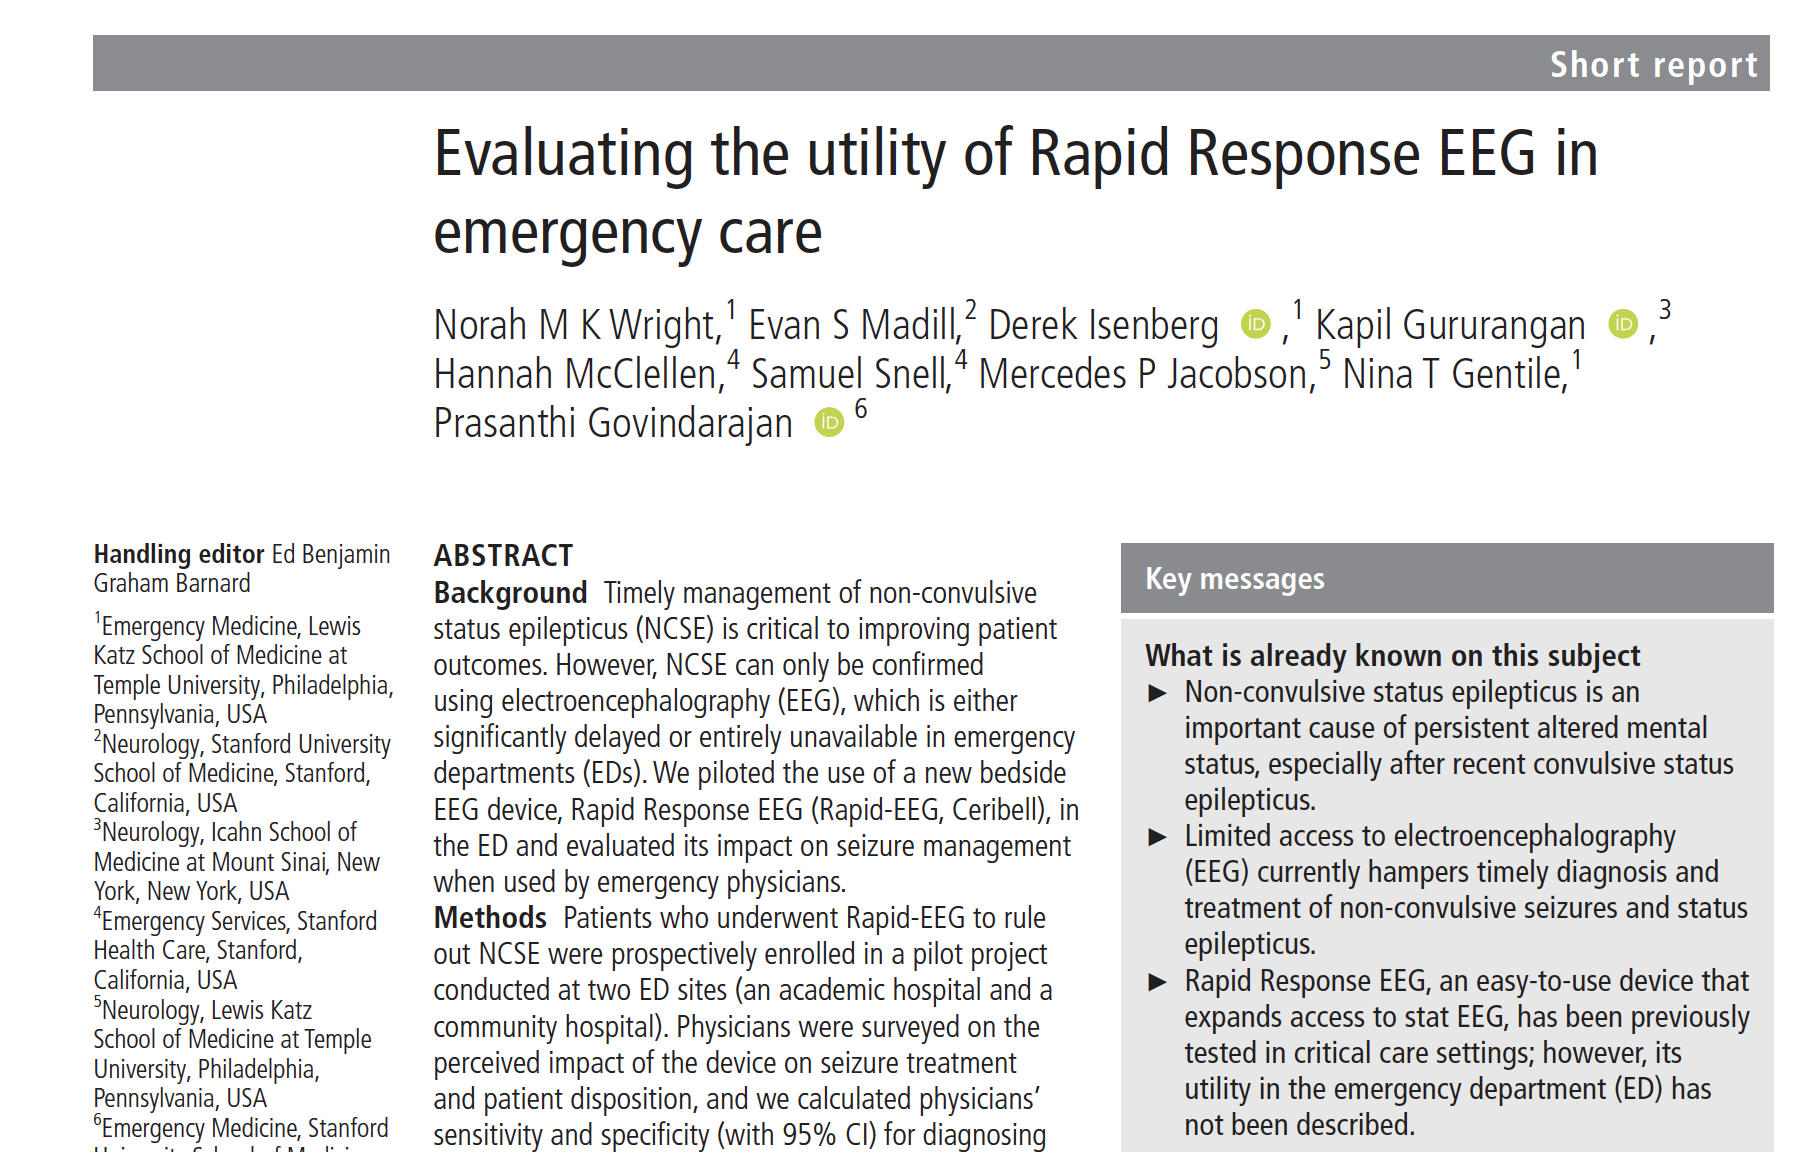 Evaluating the utility of Rapid Response EEG in emergency!care